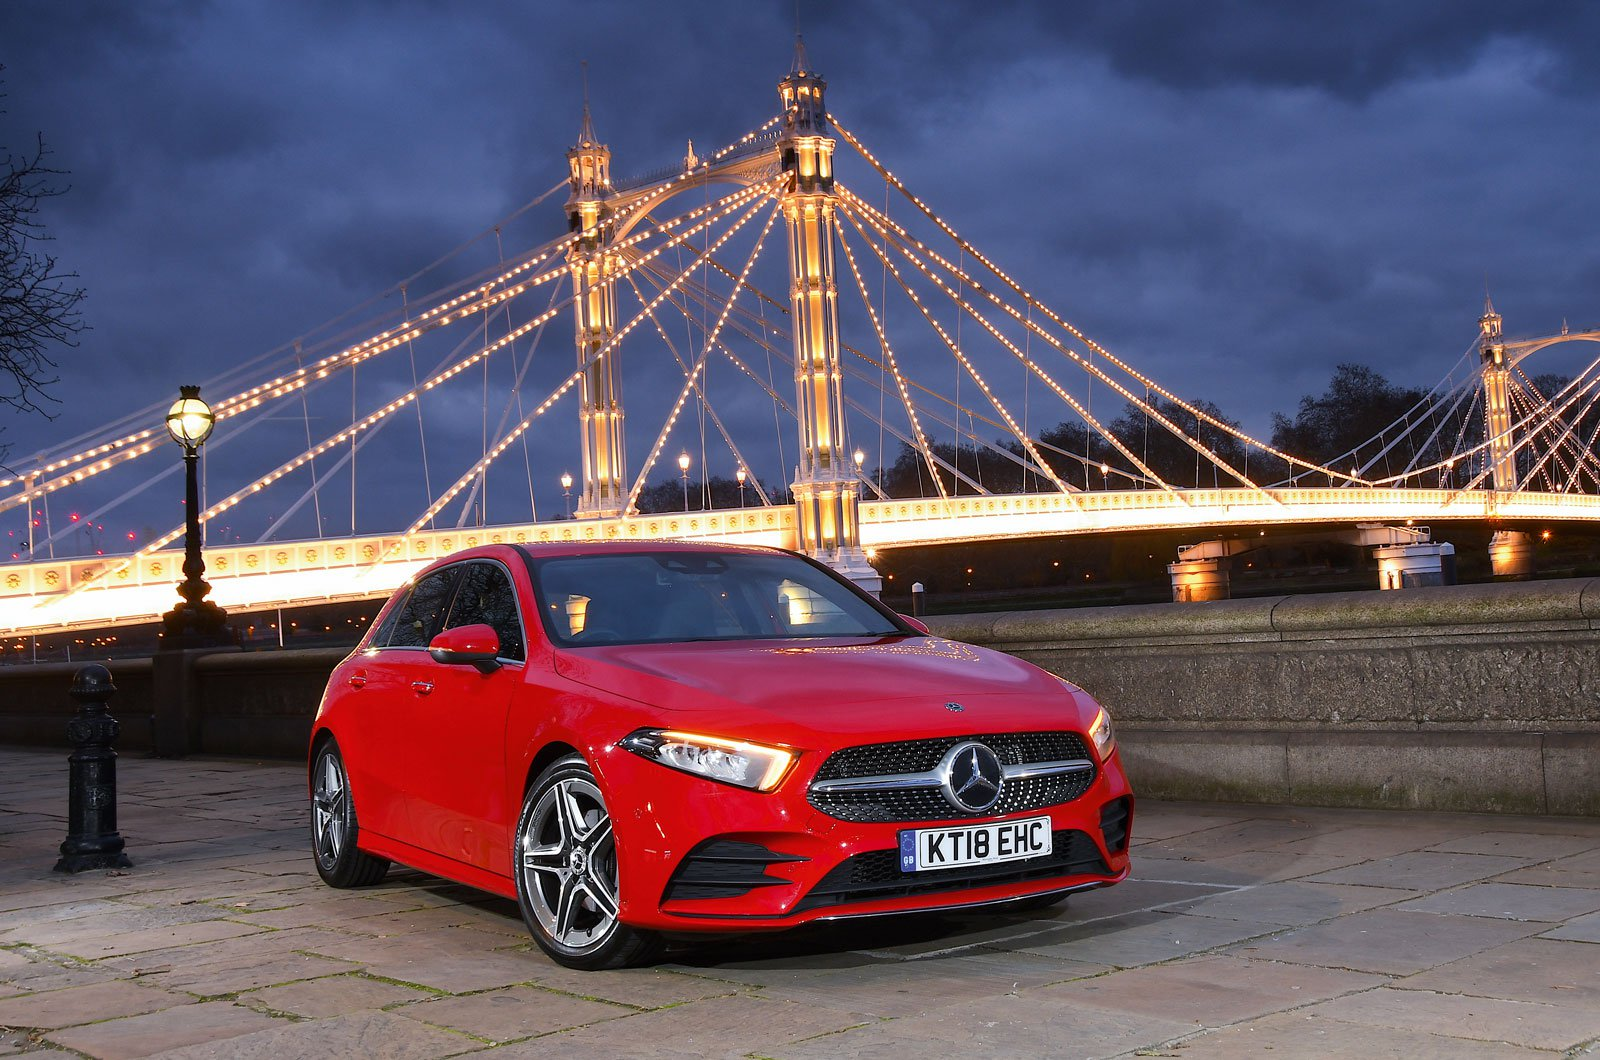 Mercedes A-Class Safety Award 2019